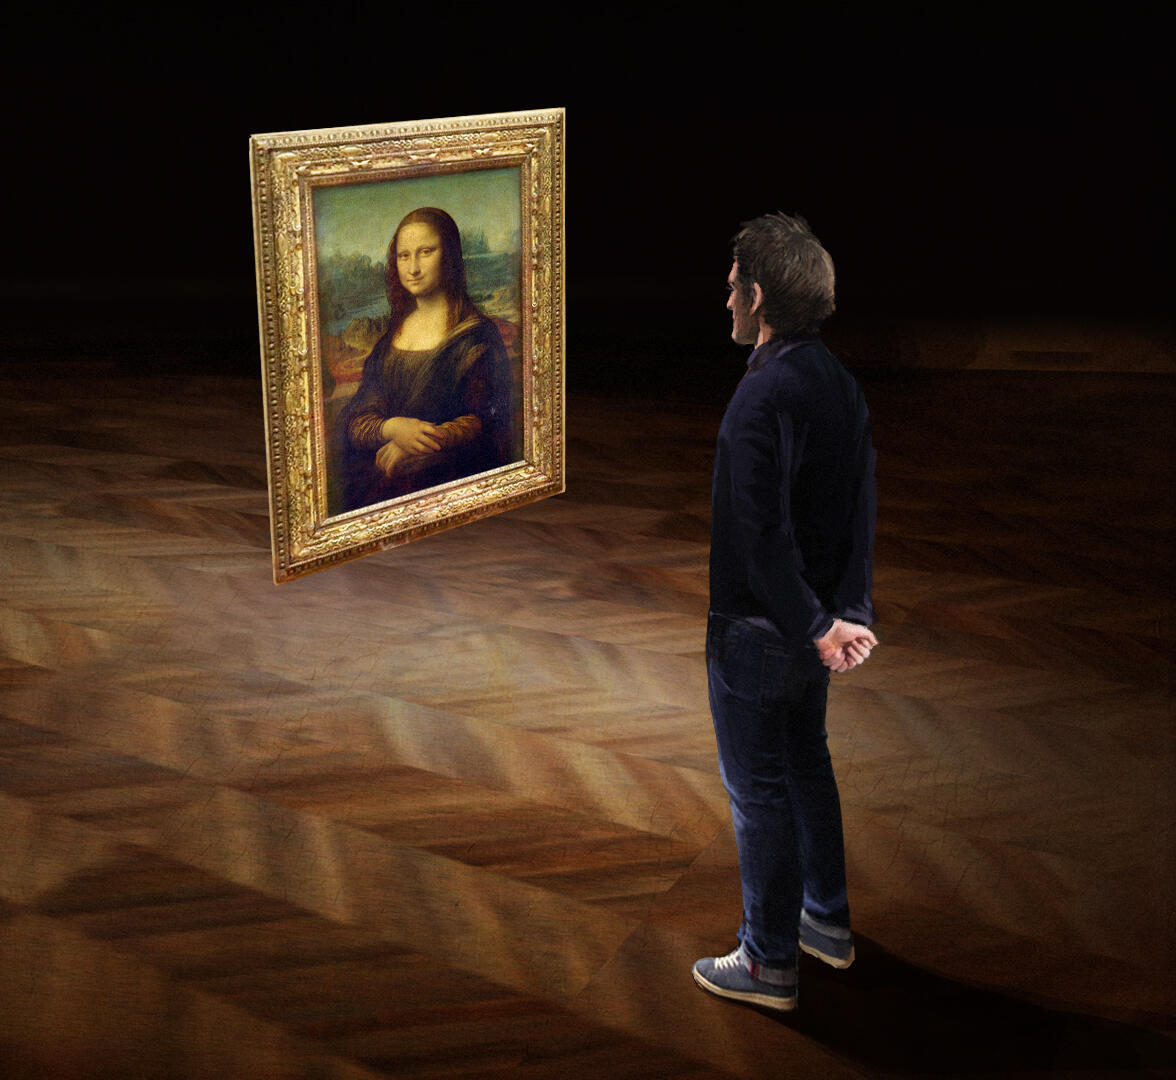 Participants in the VR experience of the Mona Lisa get an up-close and in-depth look at the history and techniques involved in the Louvre's most famous painting.